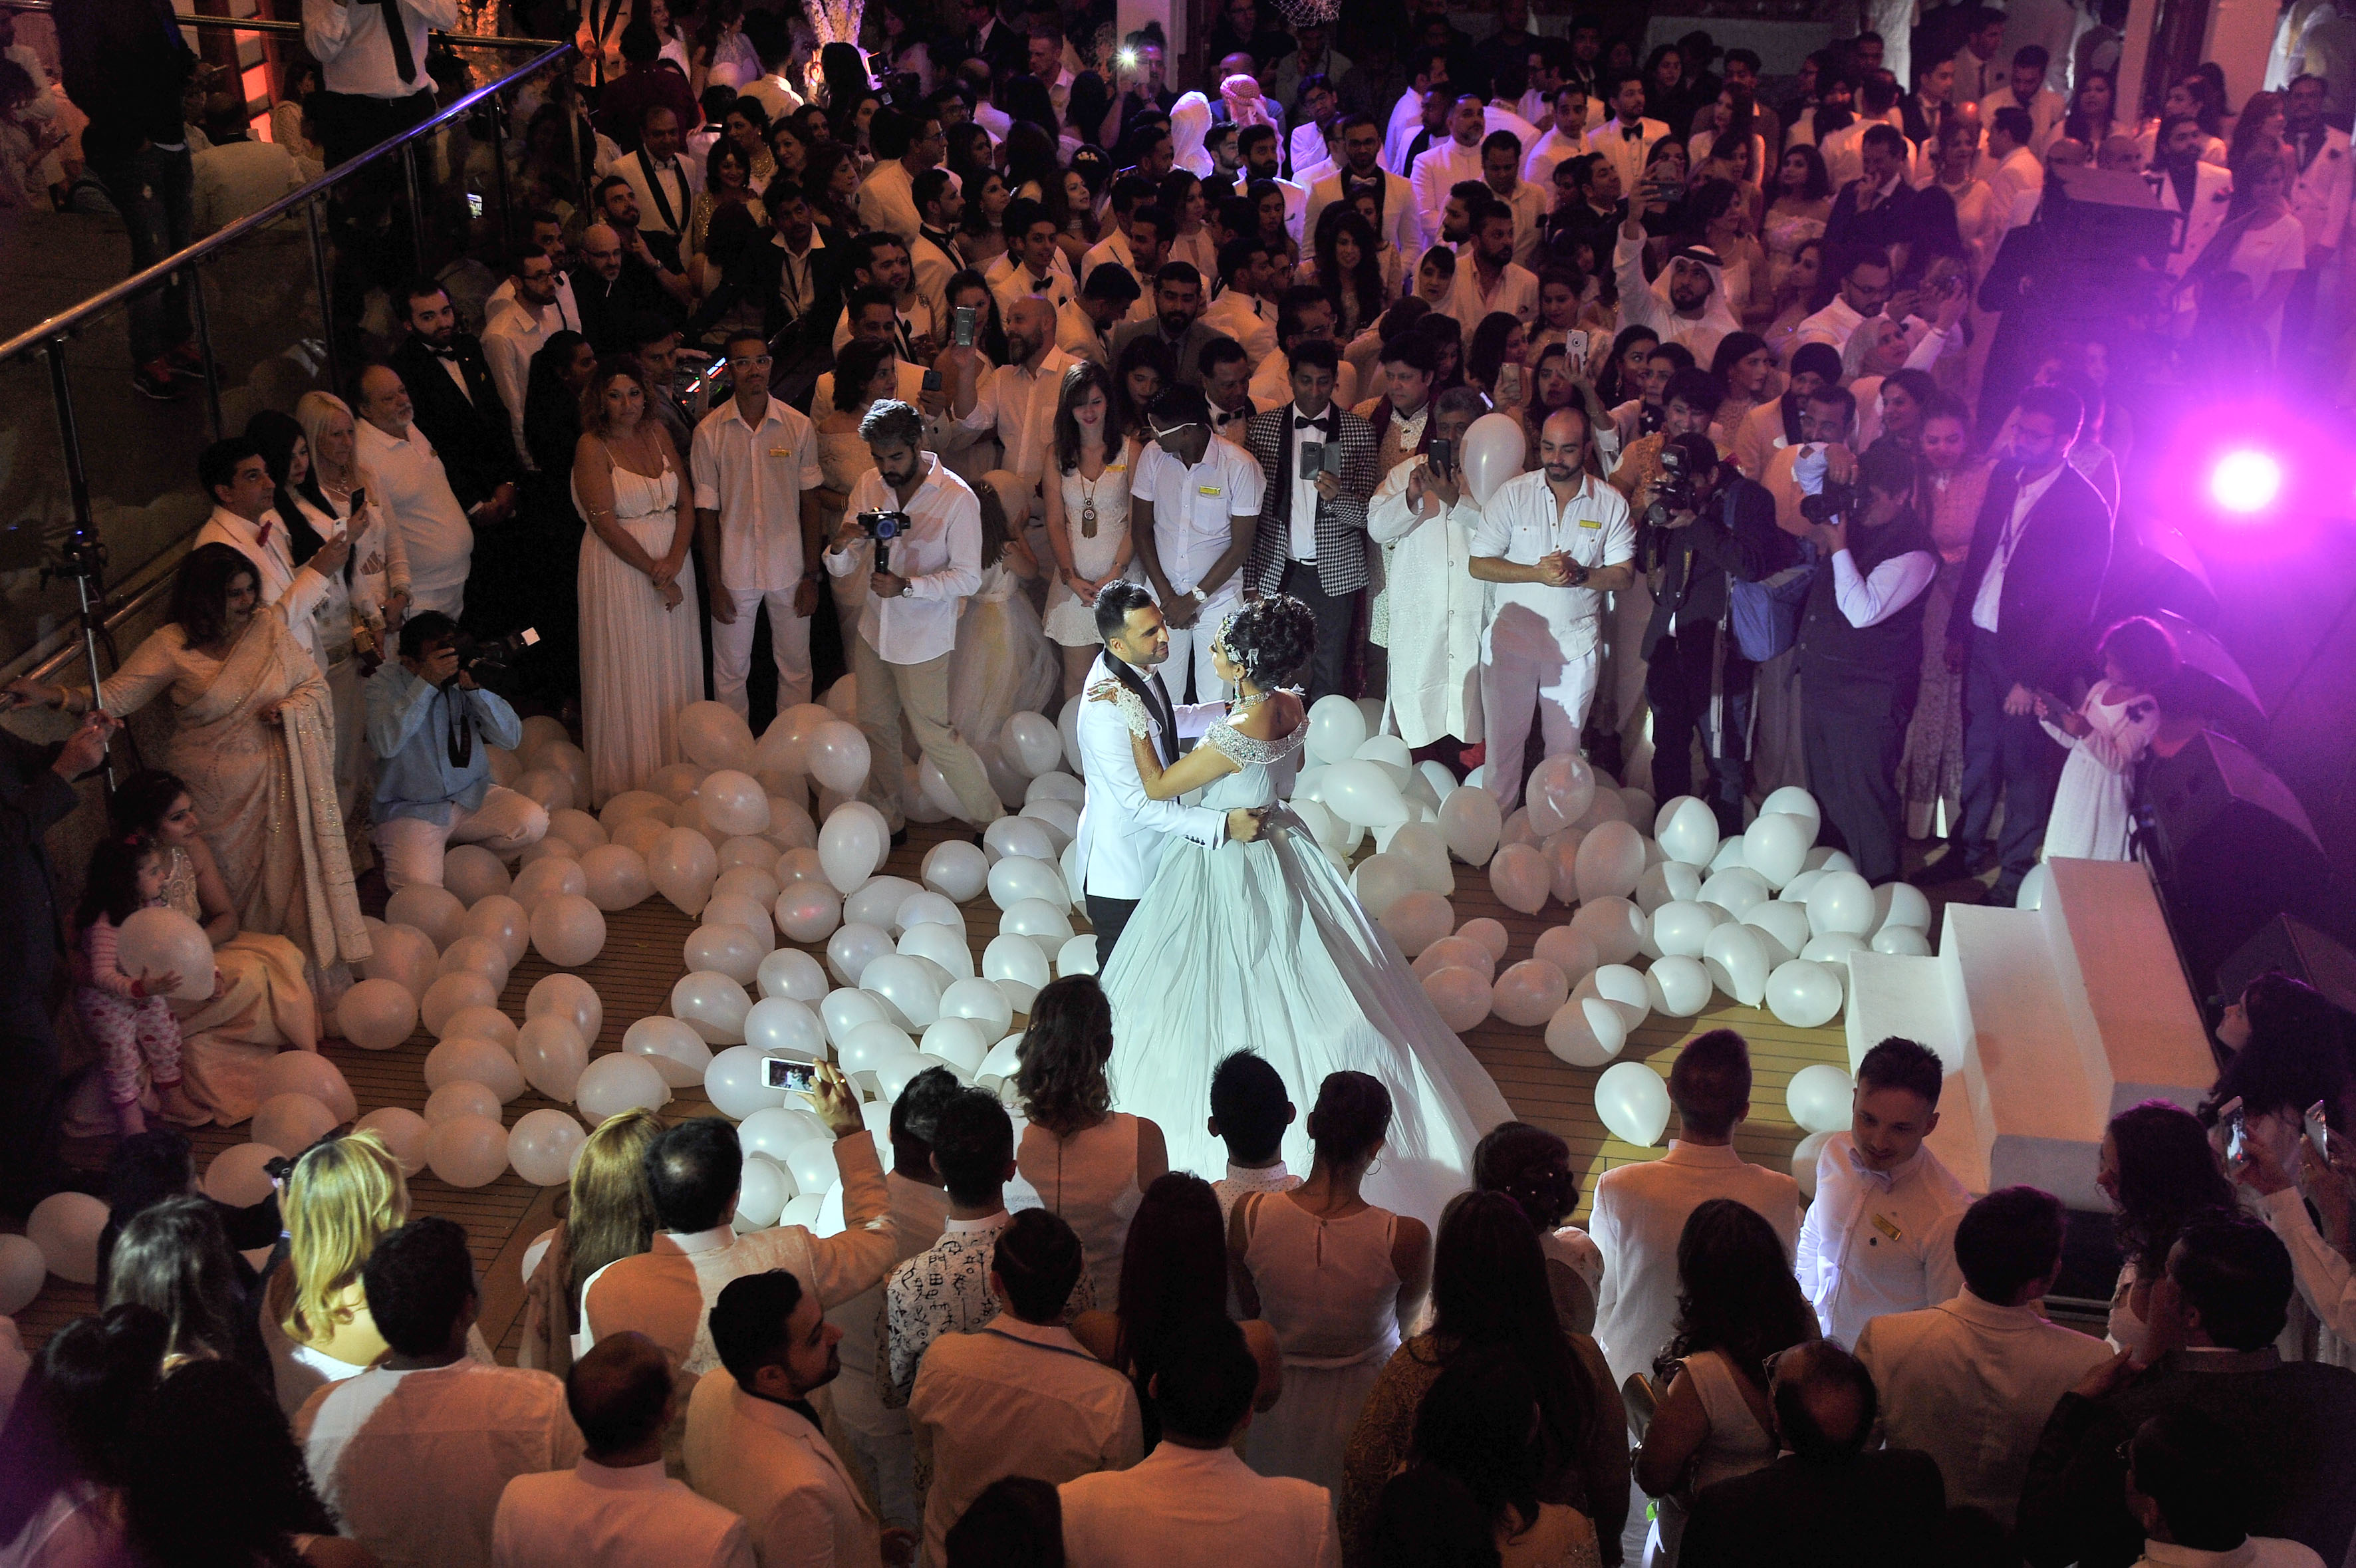 Cruise Weddings Now A Thing Deccan Herald